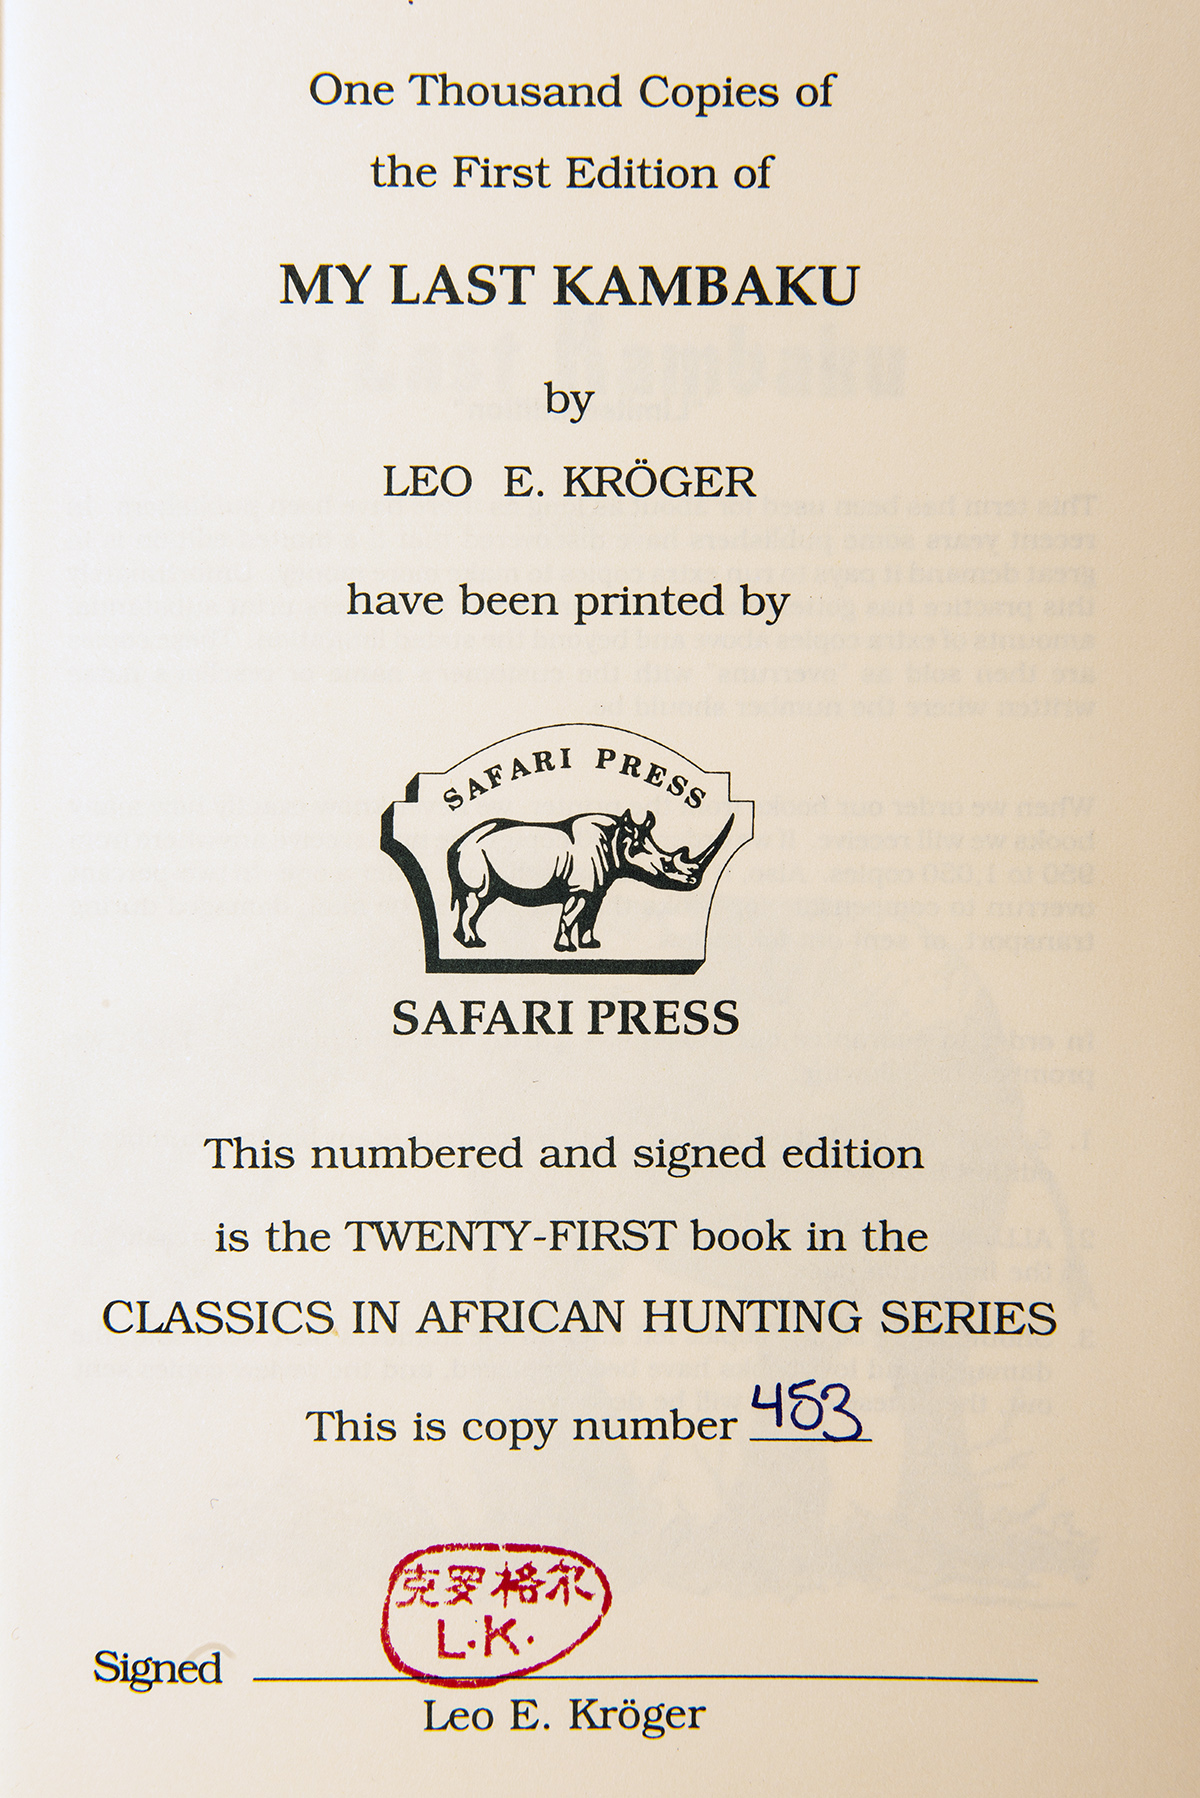 Lot 100 - TWO AFRICAN-THEMED SAFARI PRESS LIMITED EDITION SLIP-CASED HARDBACK BOOKS: HEAT, THIRST, AND IVORY -